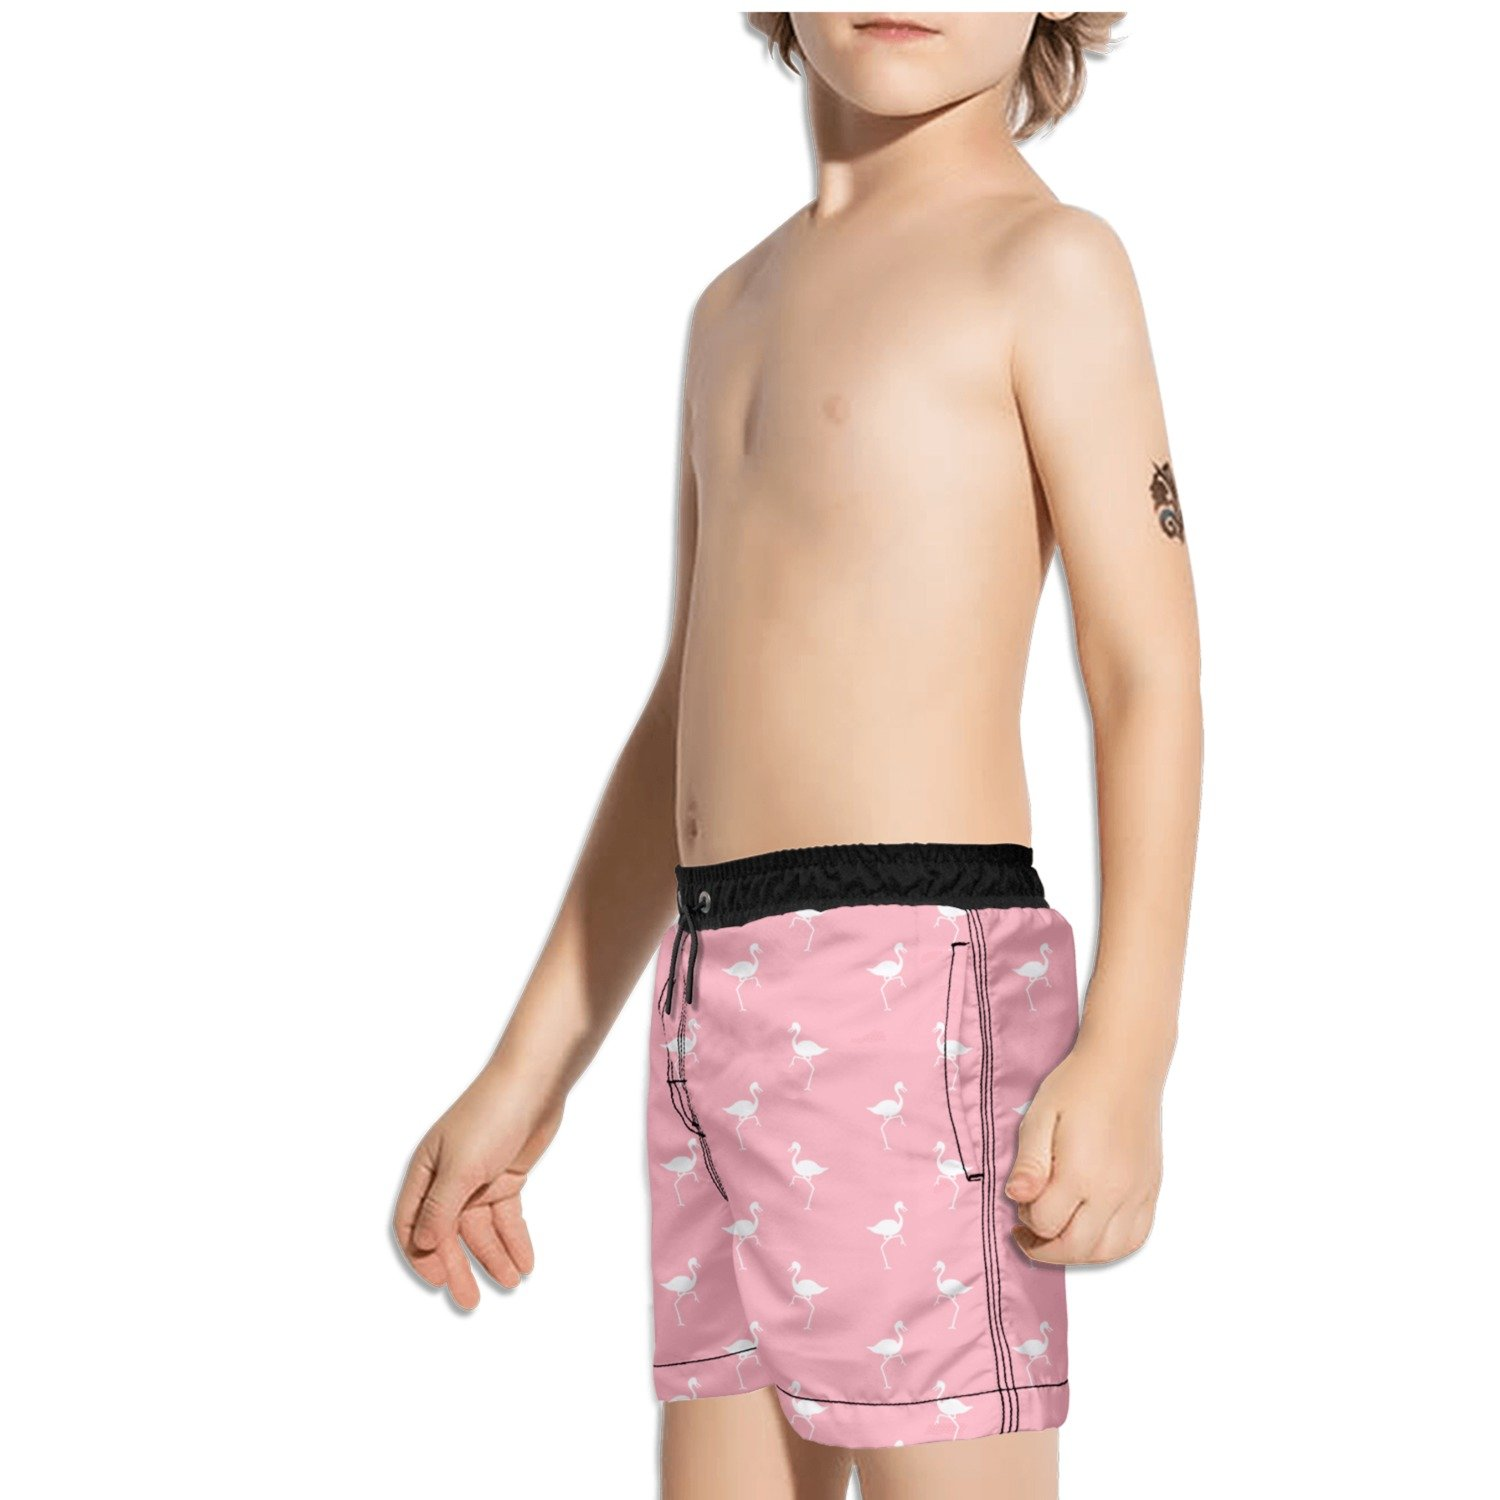 Ouxioaz Boys Swim Trunk Flamingo Brid Beach Board Shorts